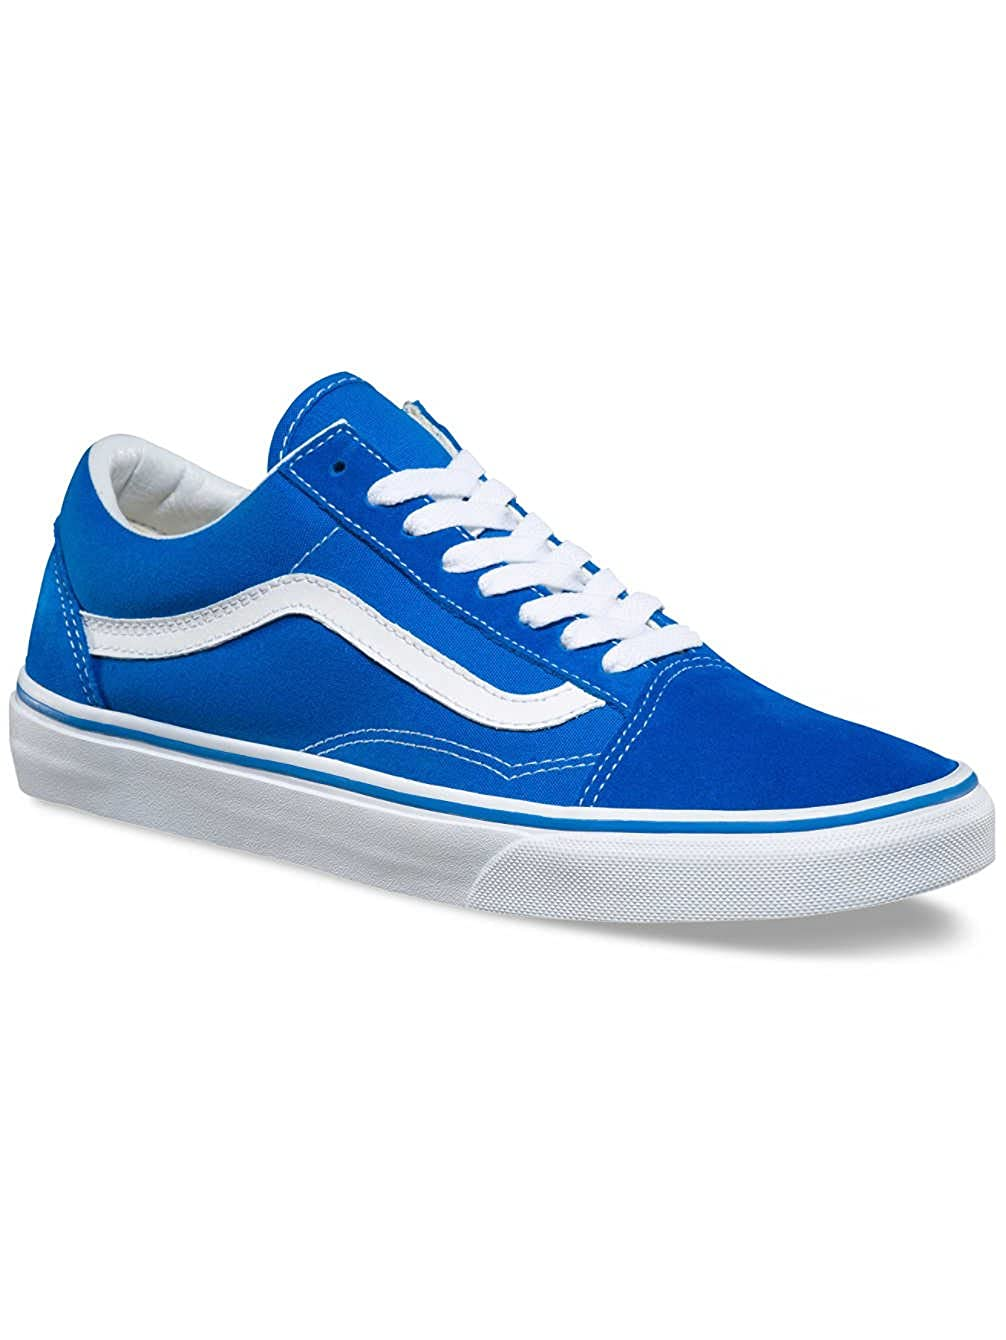 2eb002e7c9a81 Vans Old Skool (Suede/Canvas) Imperial Blue, 4.5 Men/6 Women's